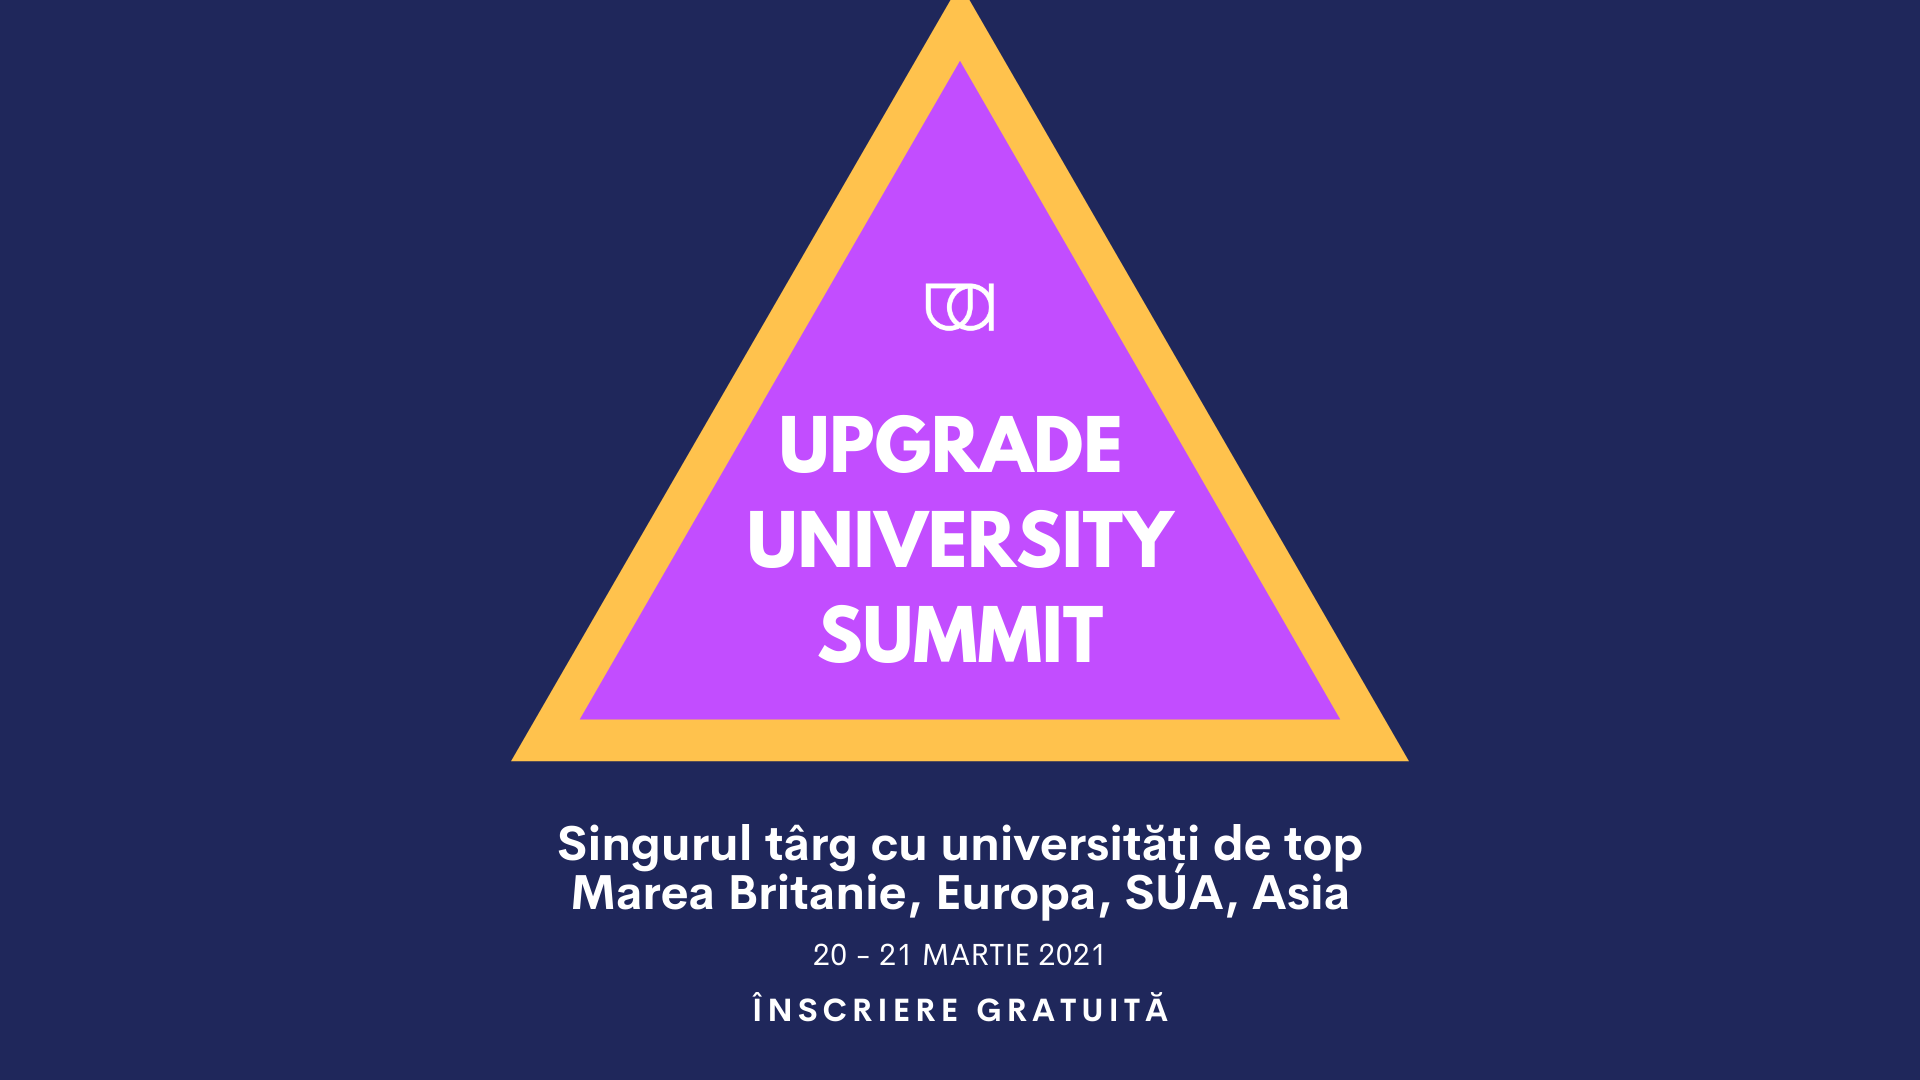 Upgrade University Summit 2021